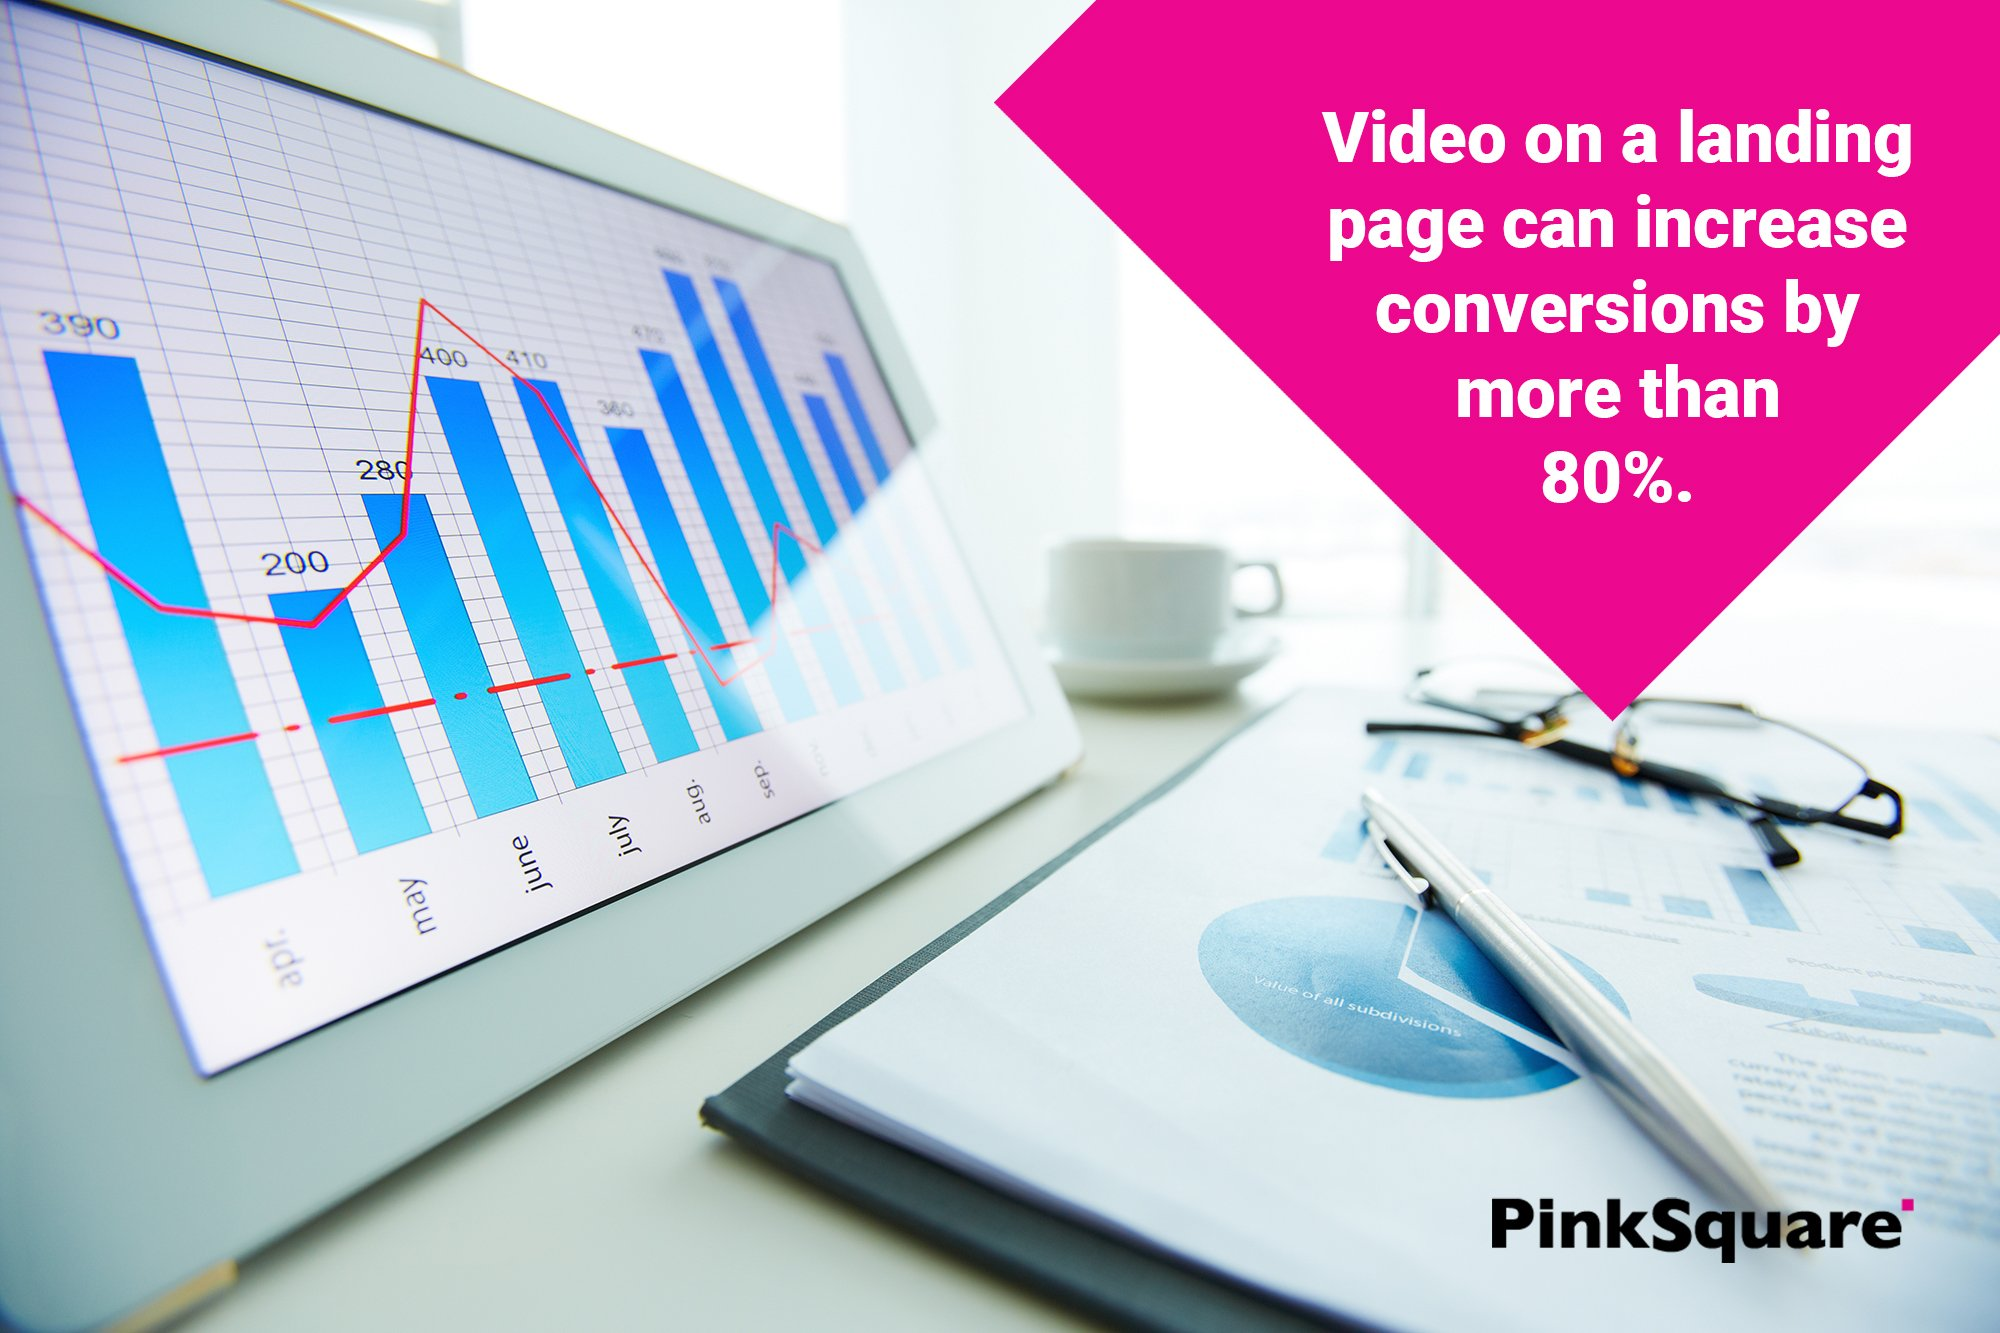 video on landing page increases conversions